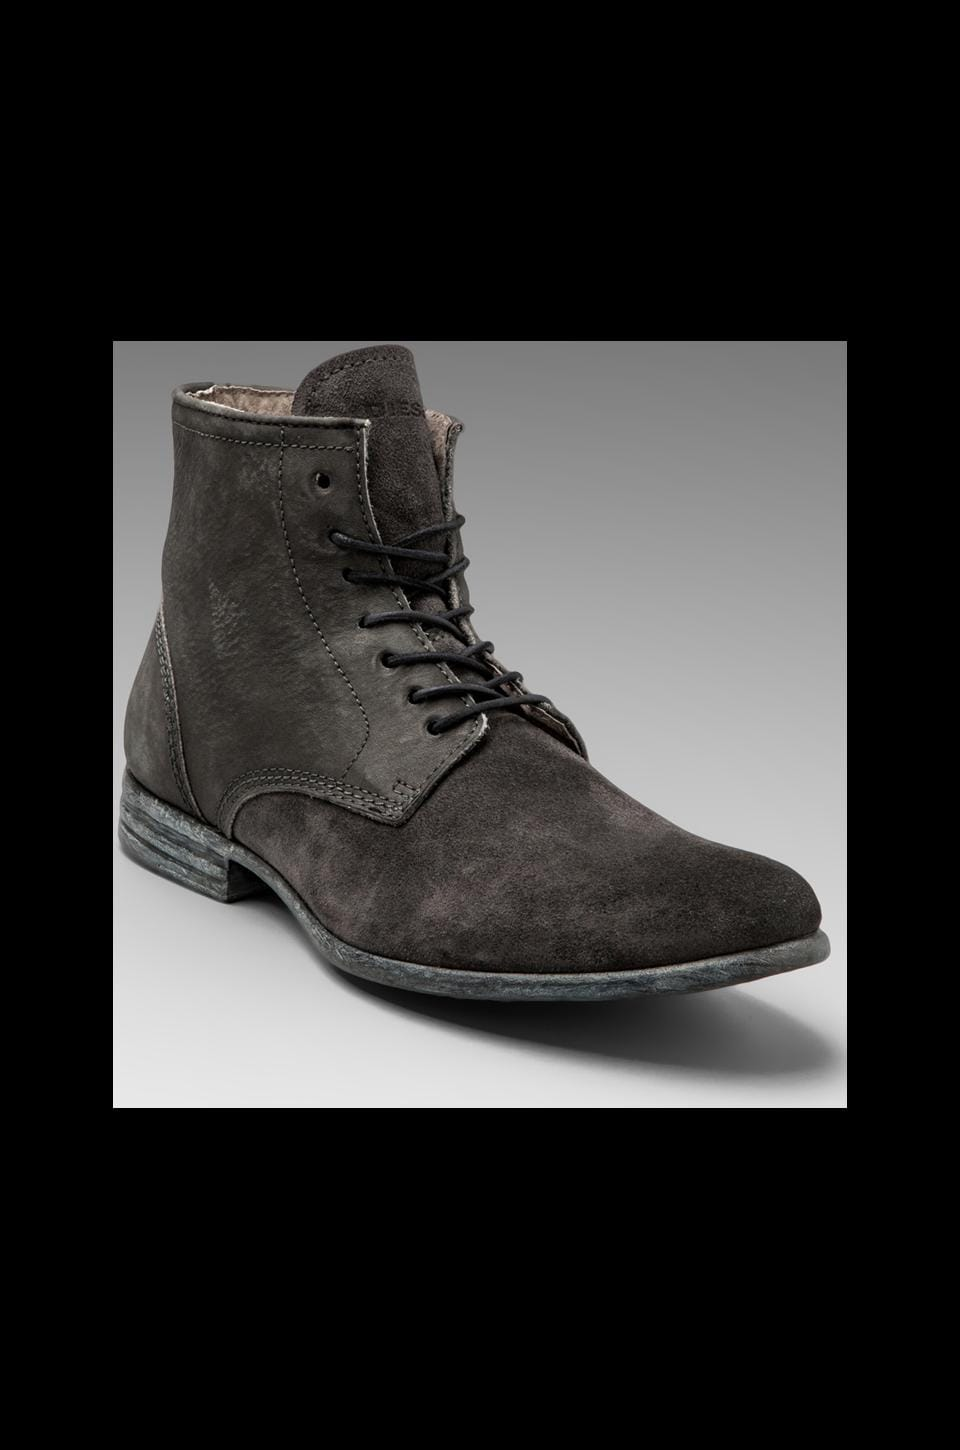 Diesel Boa Vista Chrom Boot in Anthracite